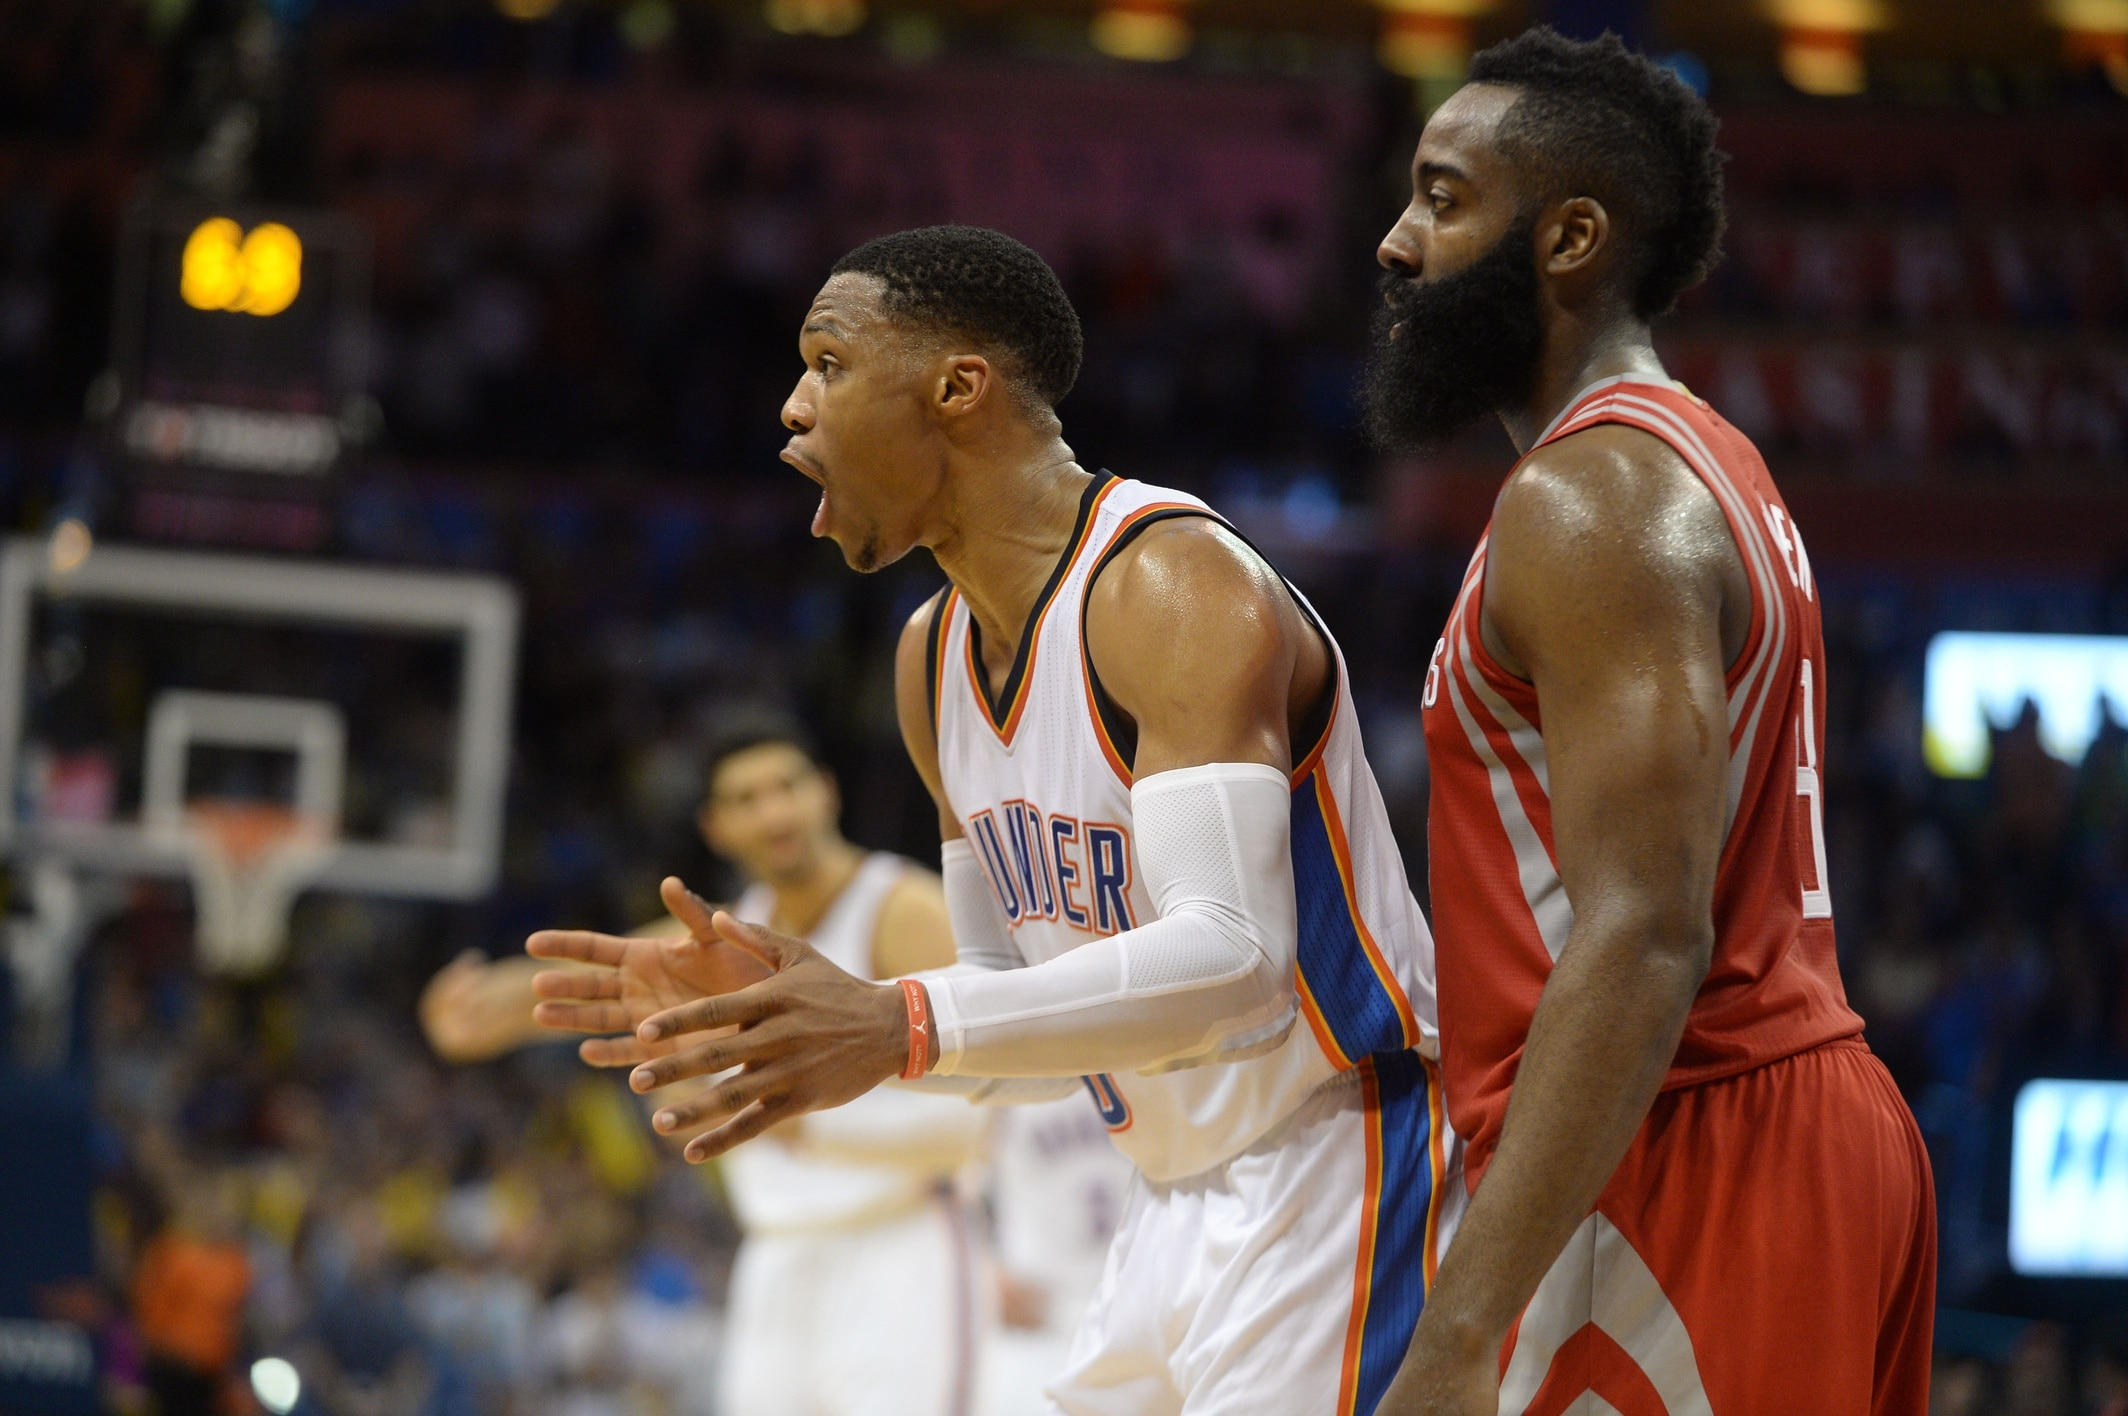 Caption: Nov 16, 2016; Oklahoma City, OK, USA; Oklahoma City Thunder guard Russell Westbrook (0) and Houston Rockets guard James Harden (13) react after a play against the Houston Rockets during the fourth quarter at Chesapeake Energy Arena. Mandatory Credit: Mark D. Smith-USA TODAY Sports